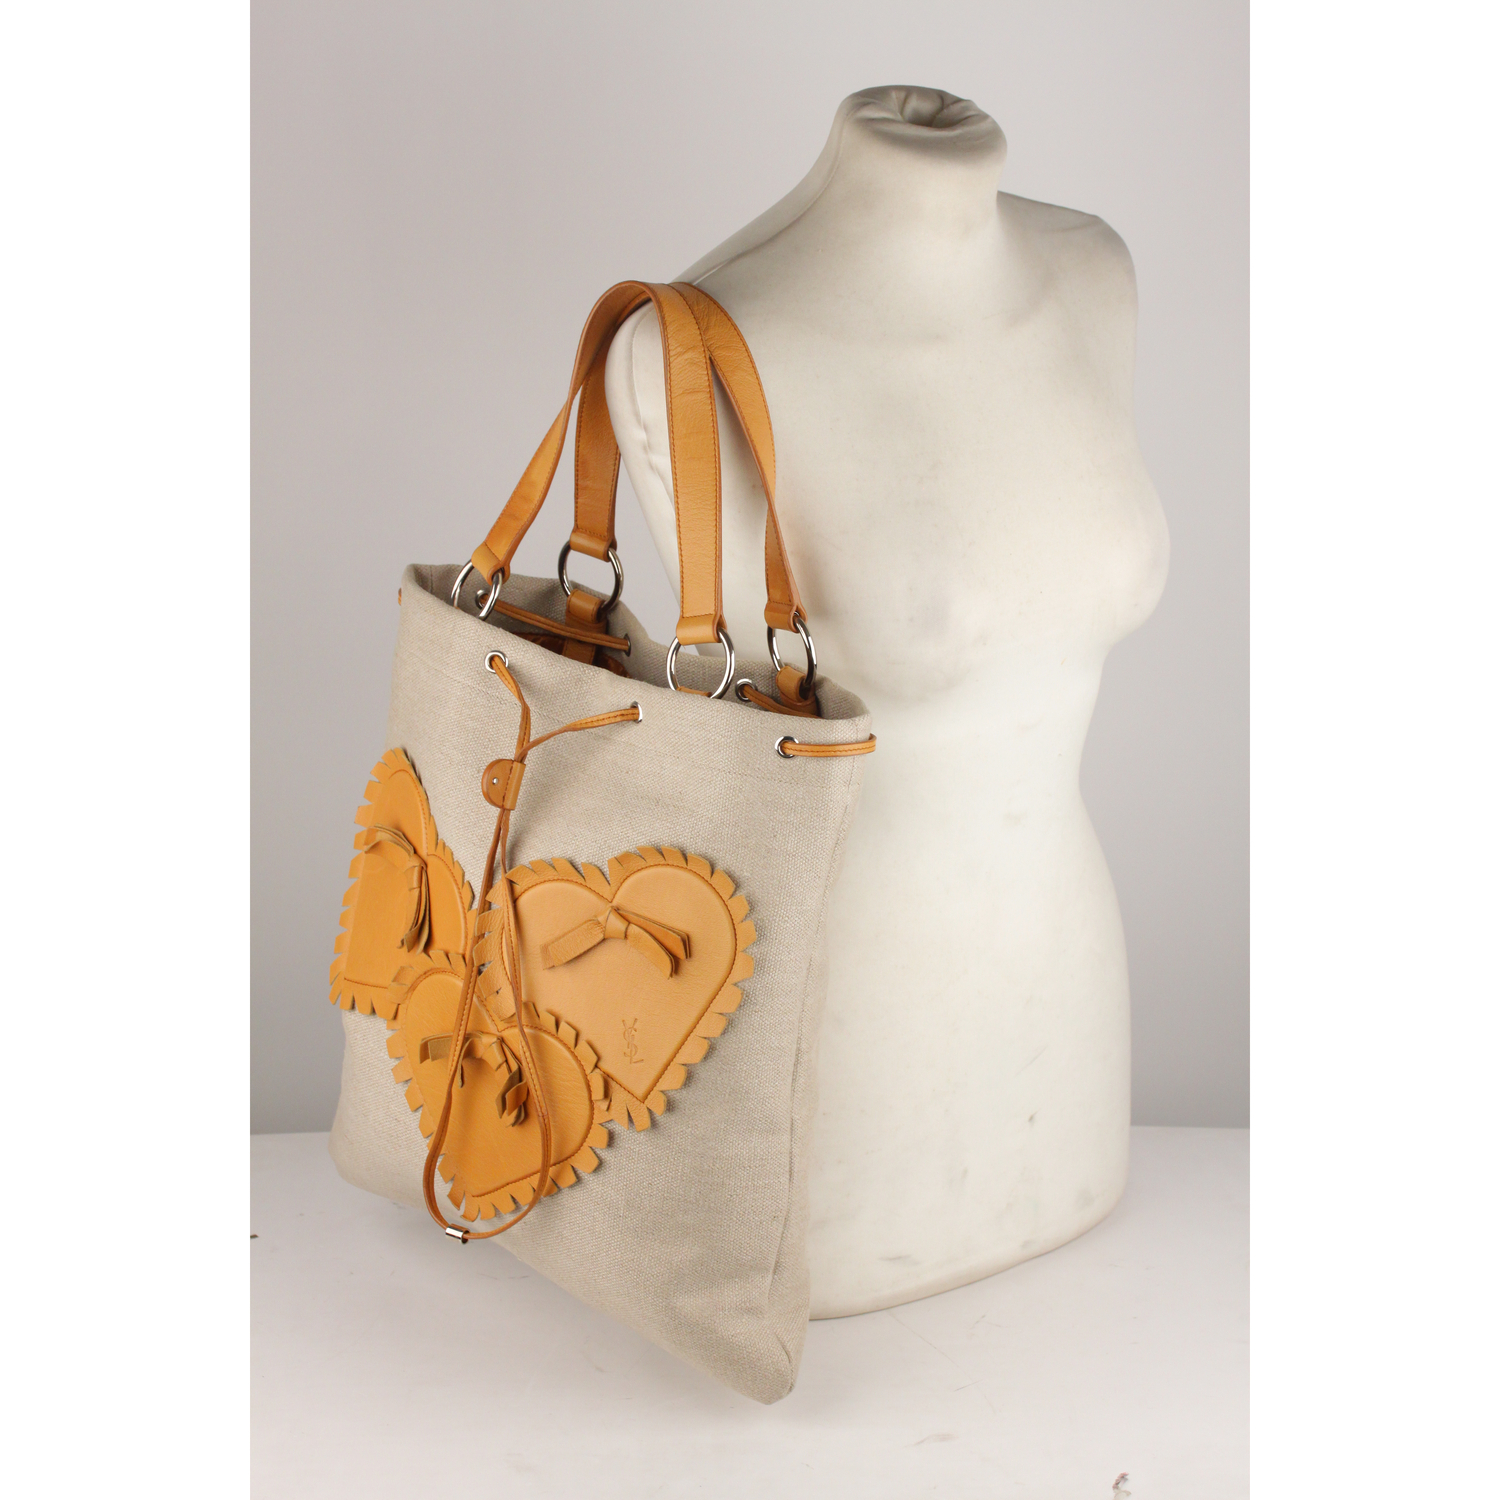 91d0703ae070 Details about Authentic Yves Saint Laurent Tan Canvas and Leather Hearts Tote  Bag